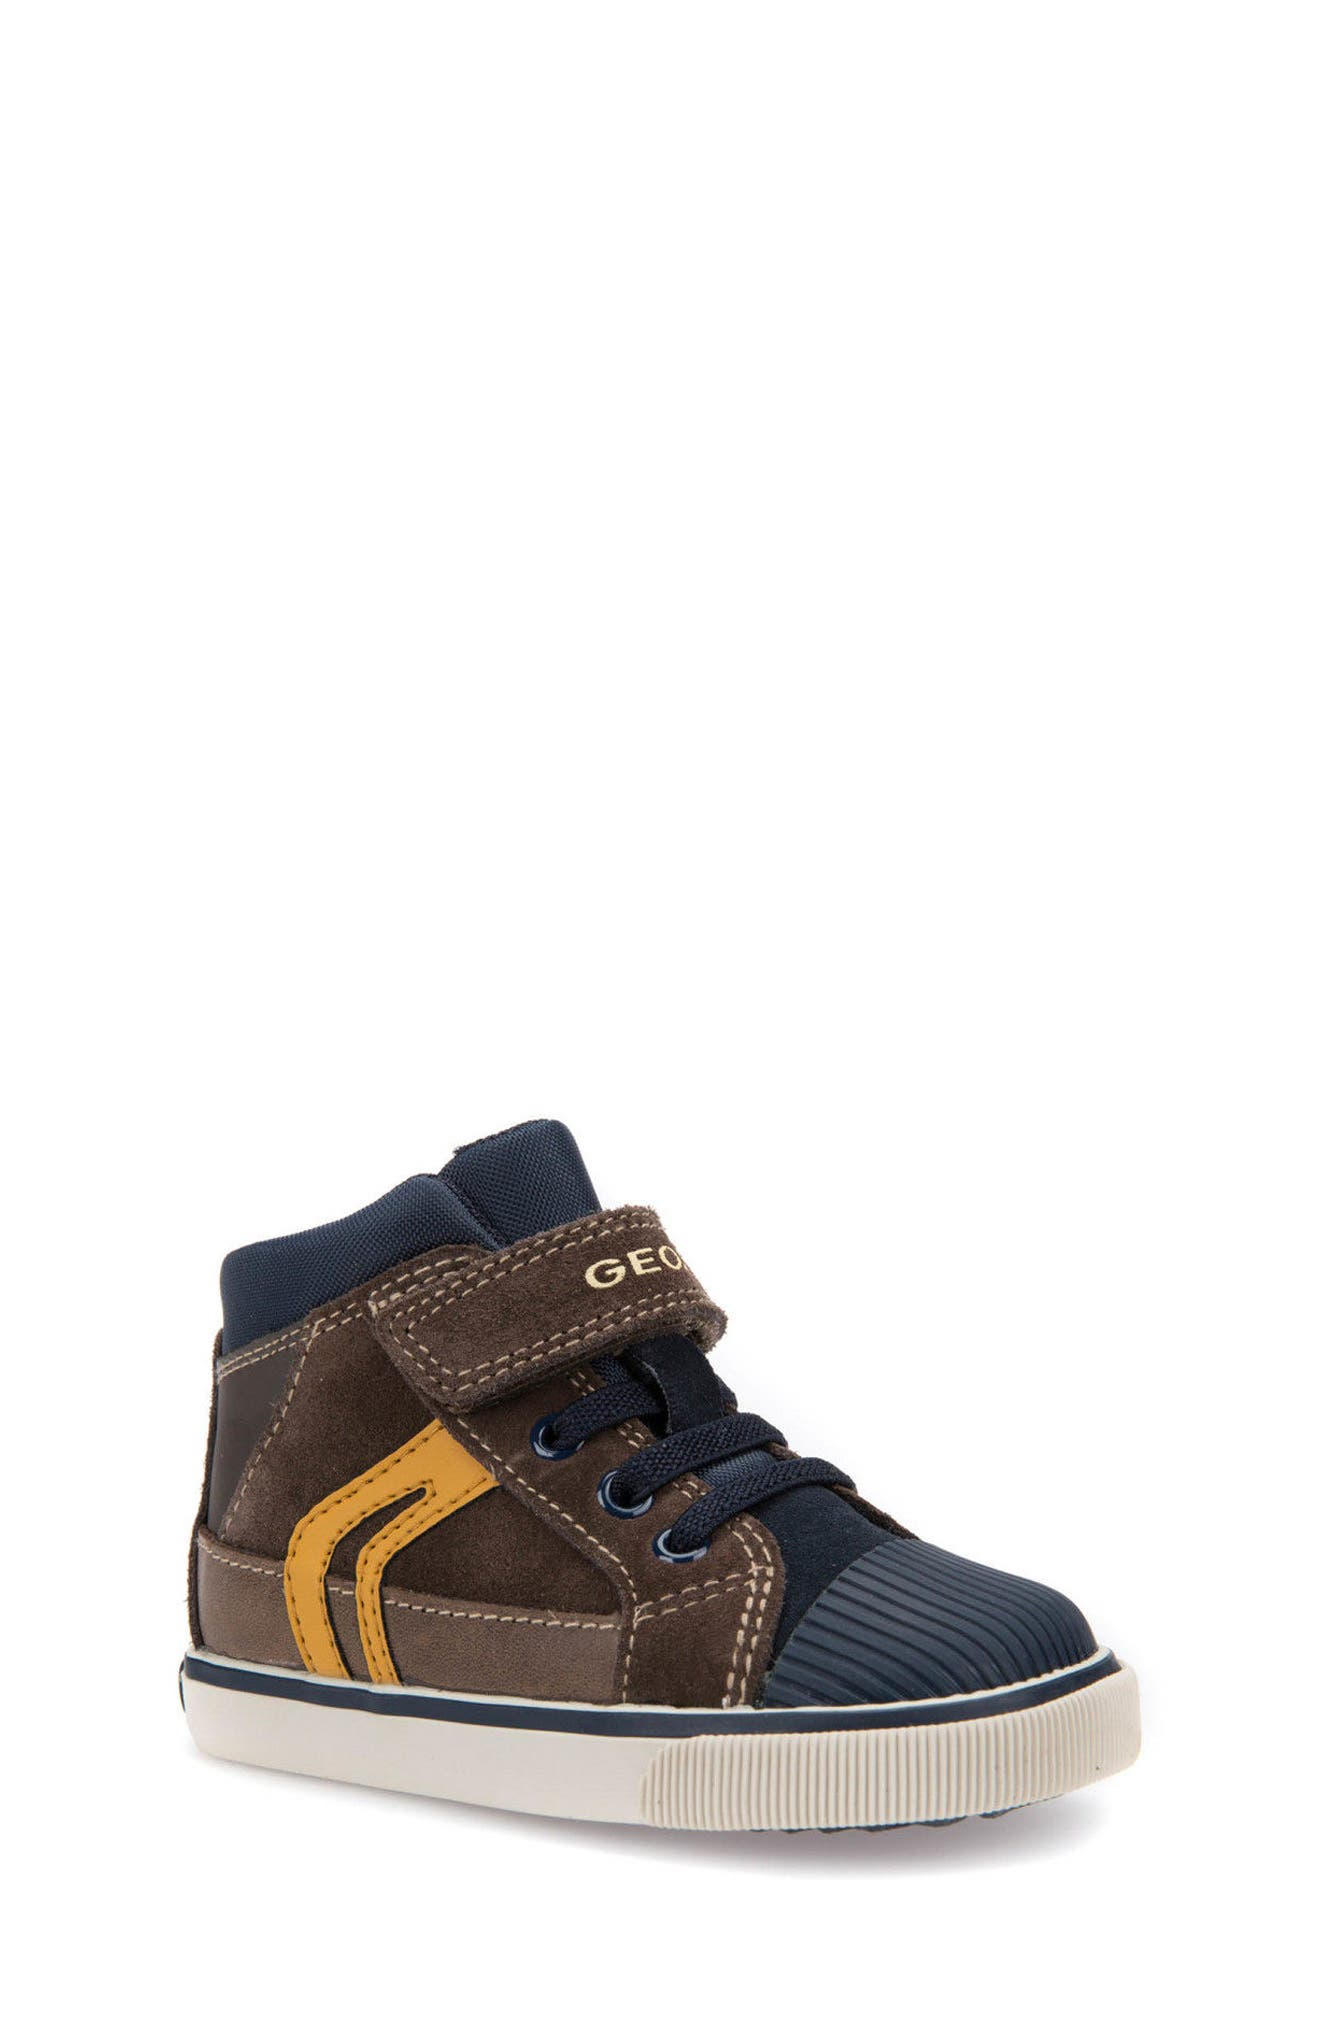 'Kiwi' High Top Sneaker,                         Main,                         color, Chestnut/ Navy